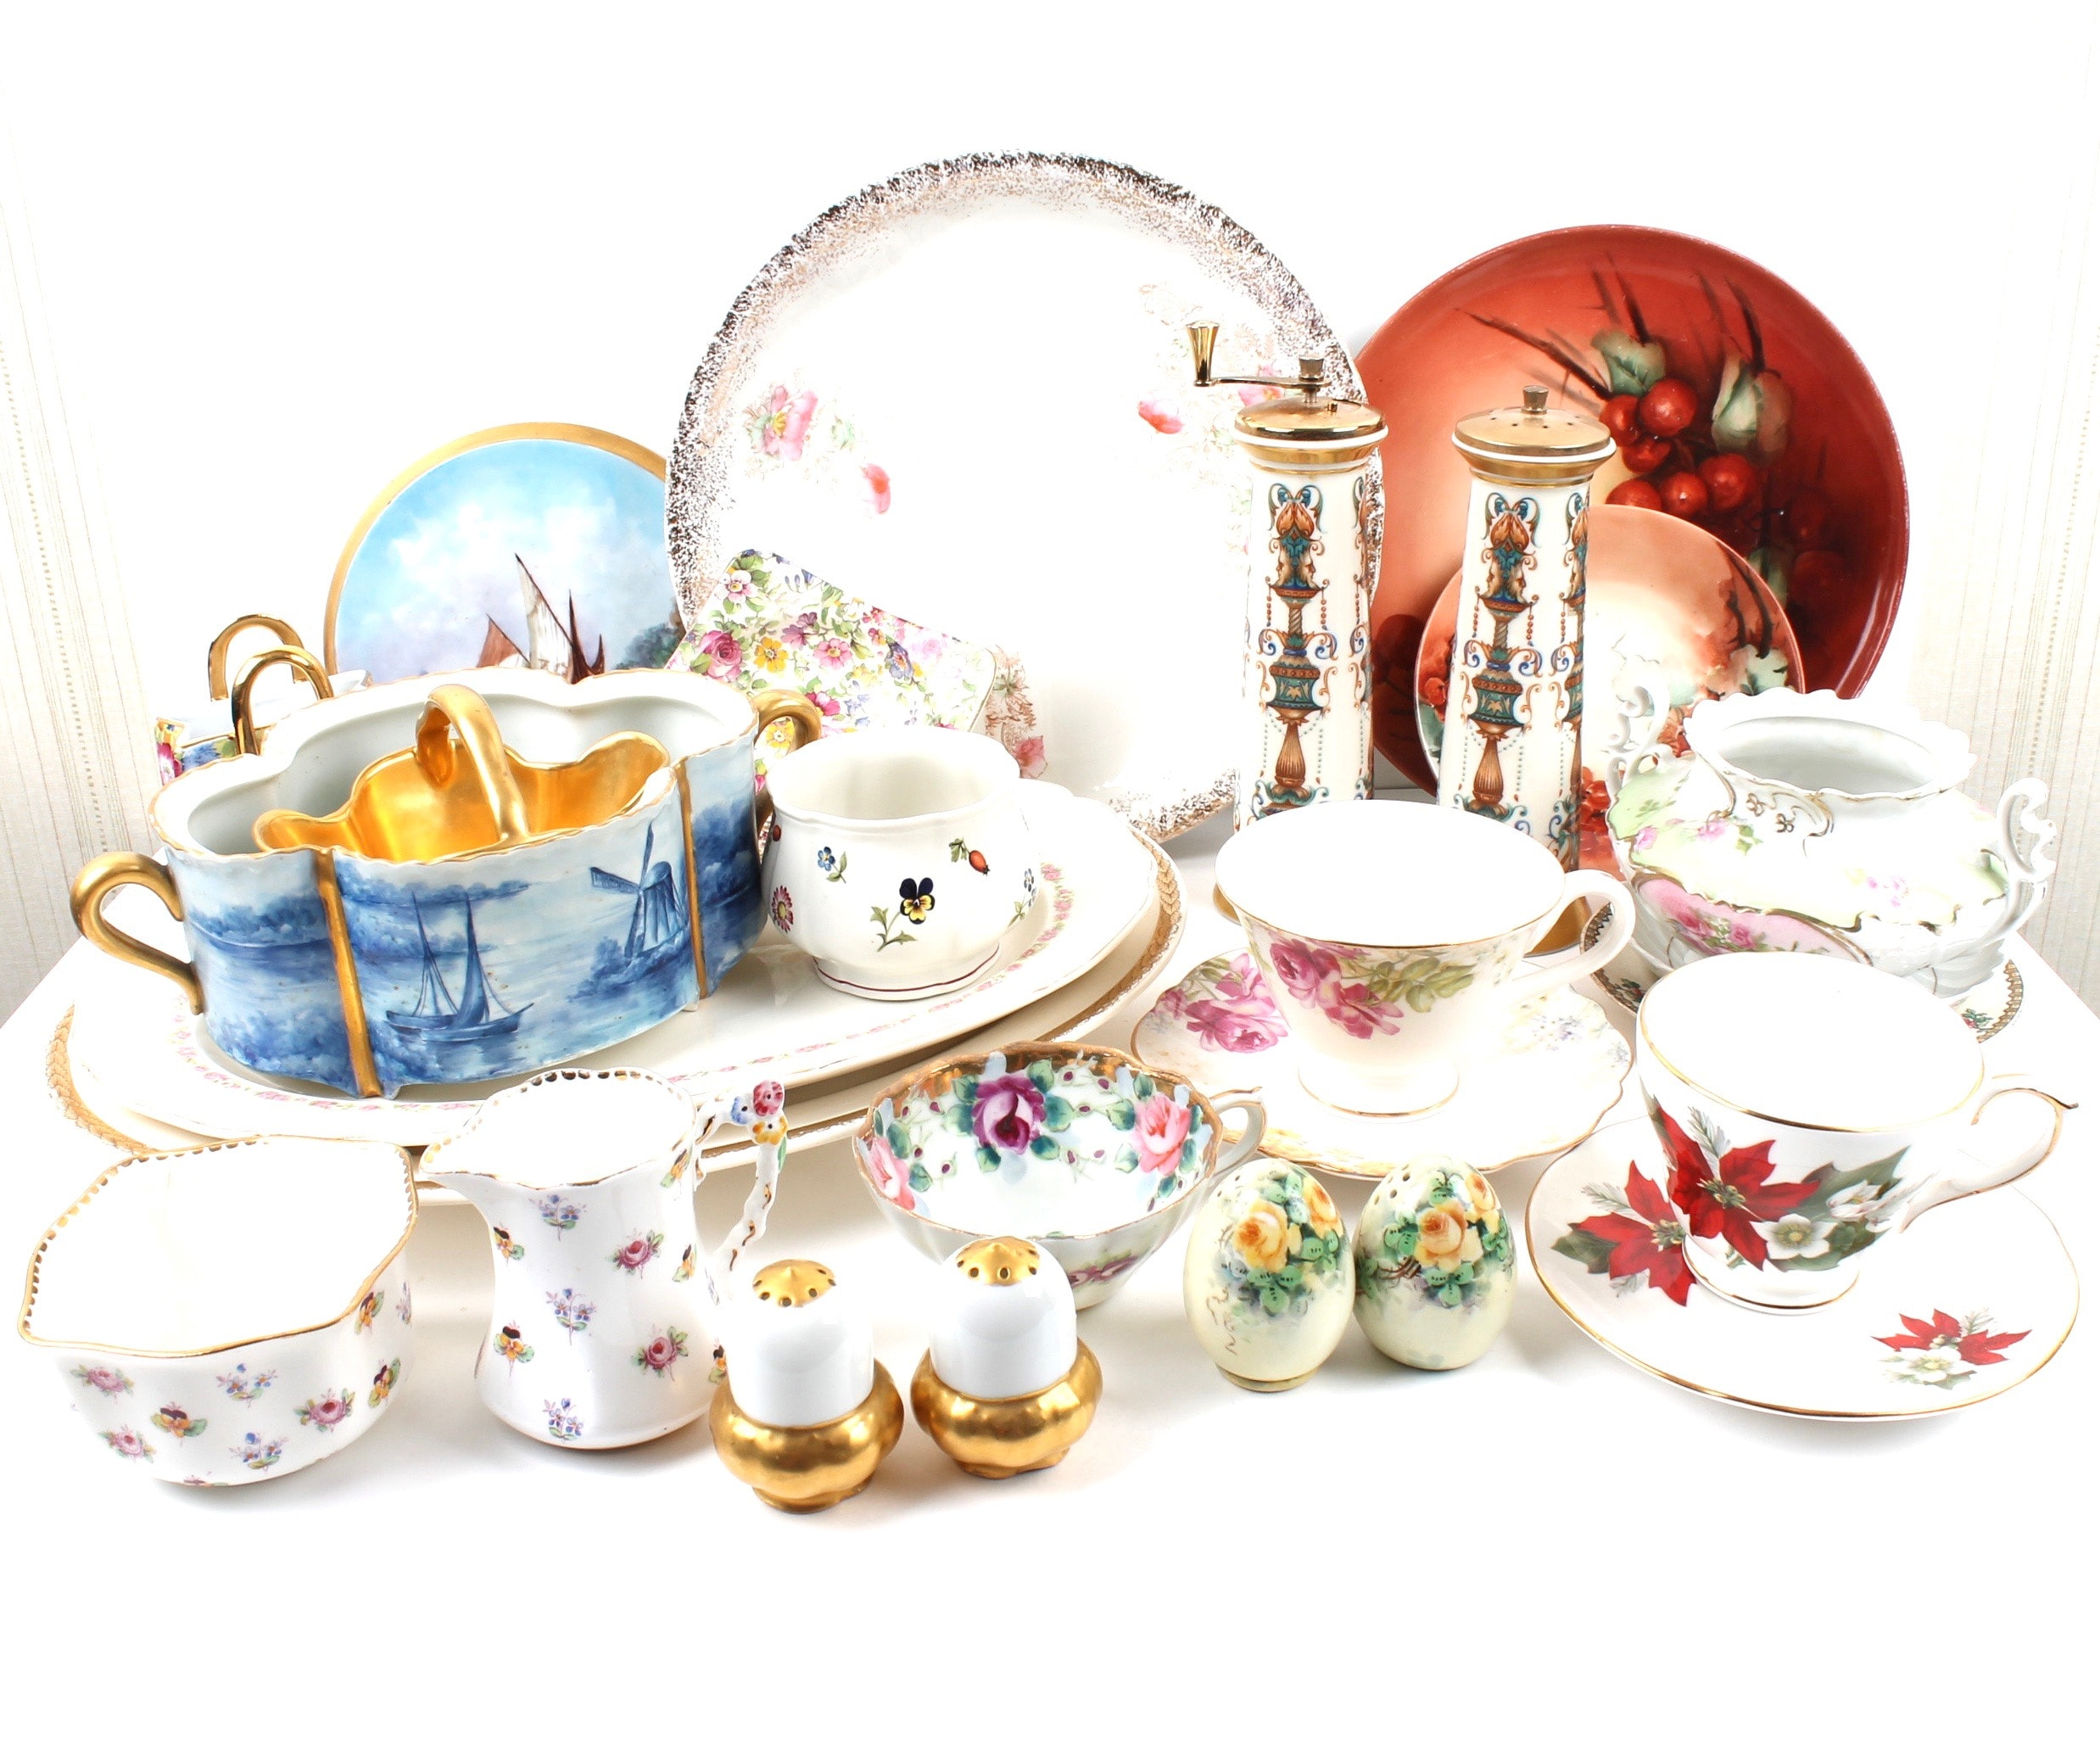 Antique and Vintage Porcelain Tableware Including Limoges